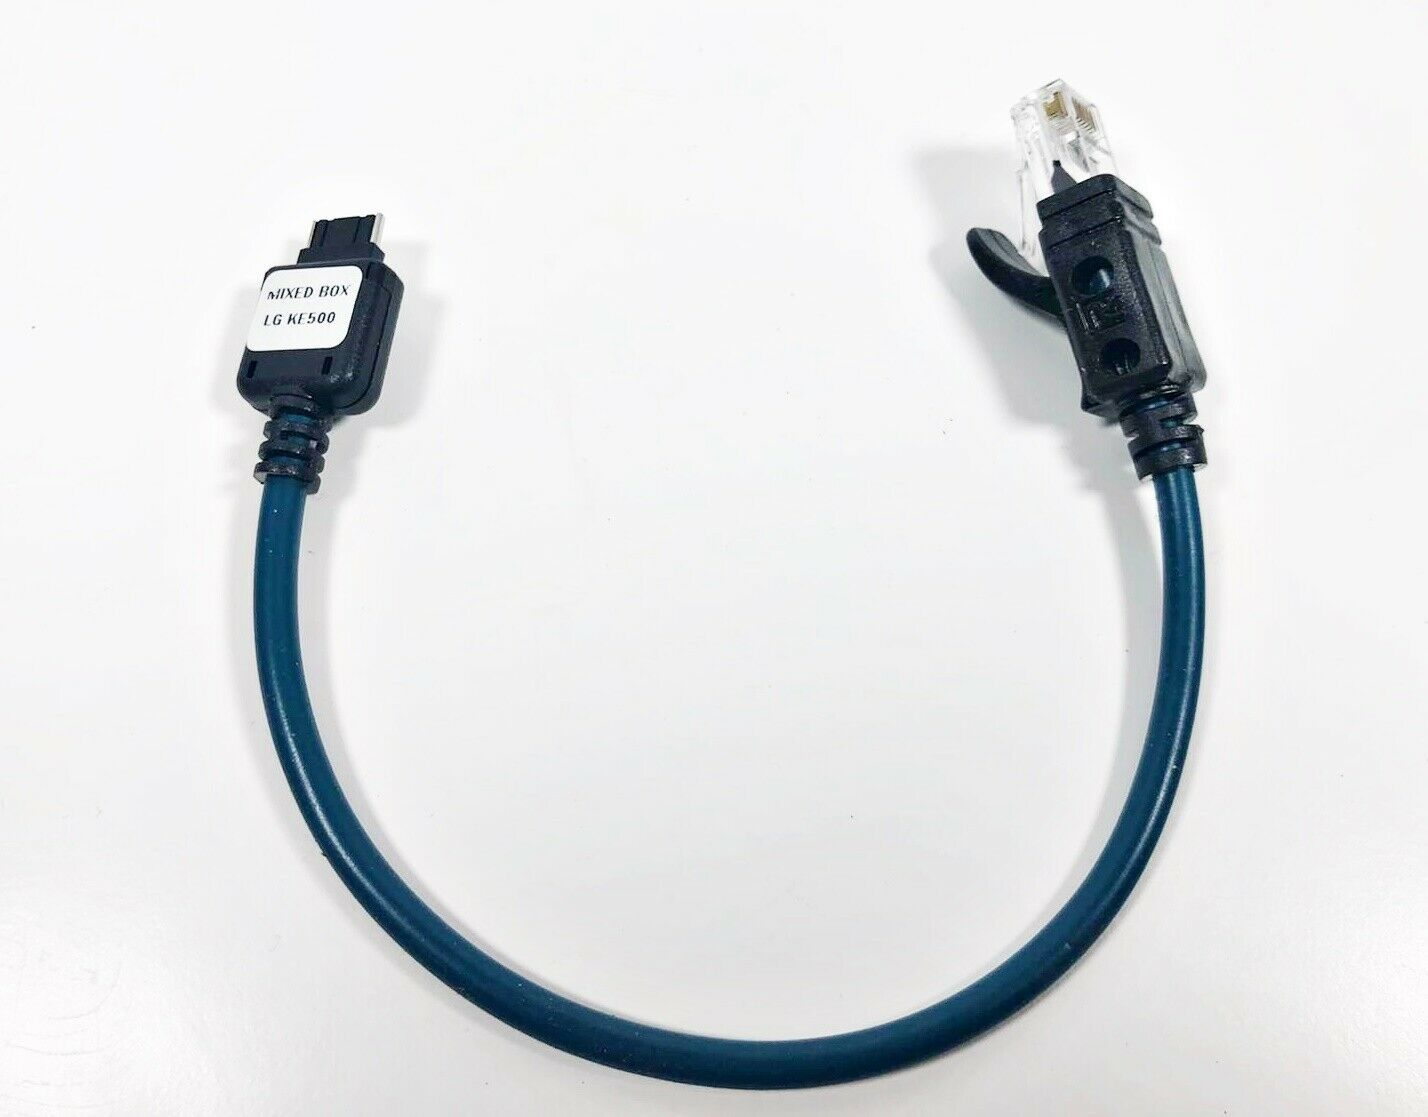 Primary image for LG KE500 USB Service Unlocking Cable for Mixed Box